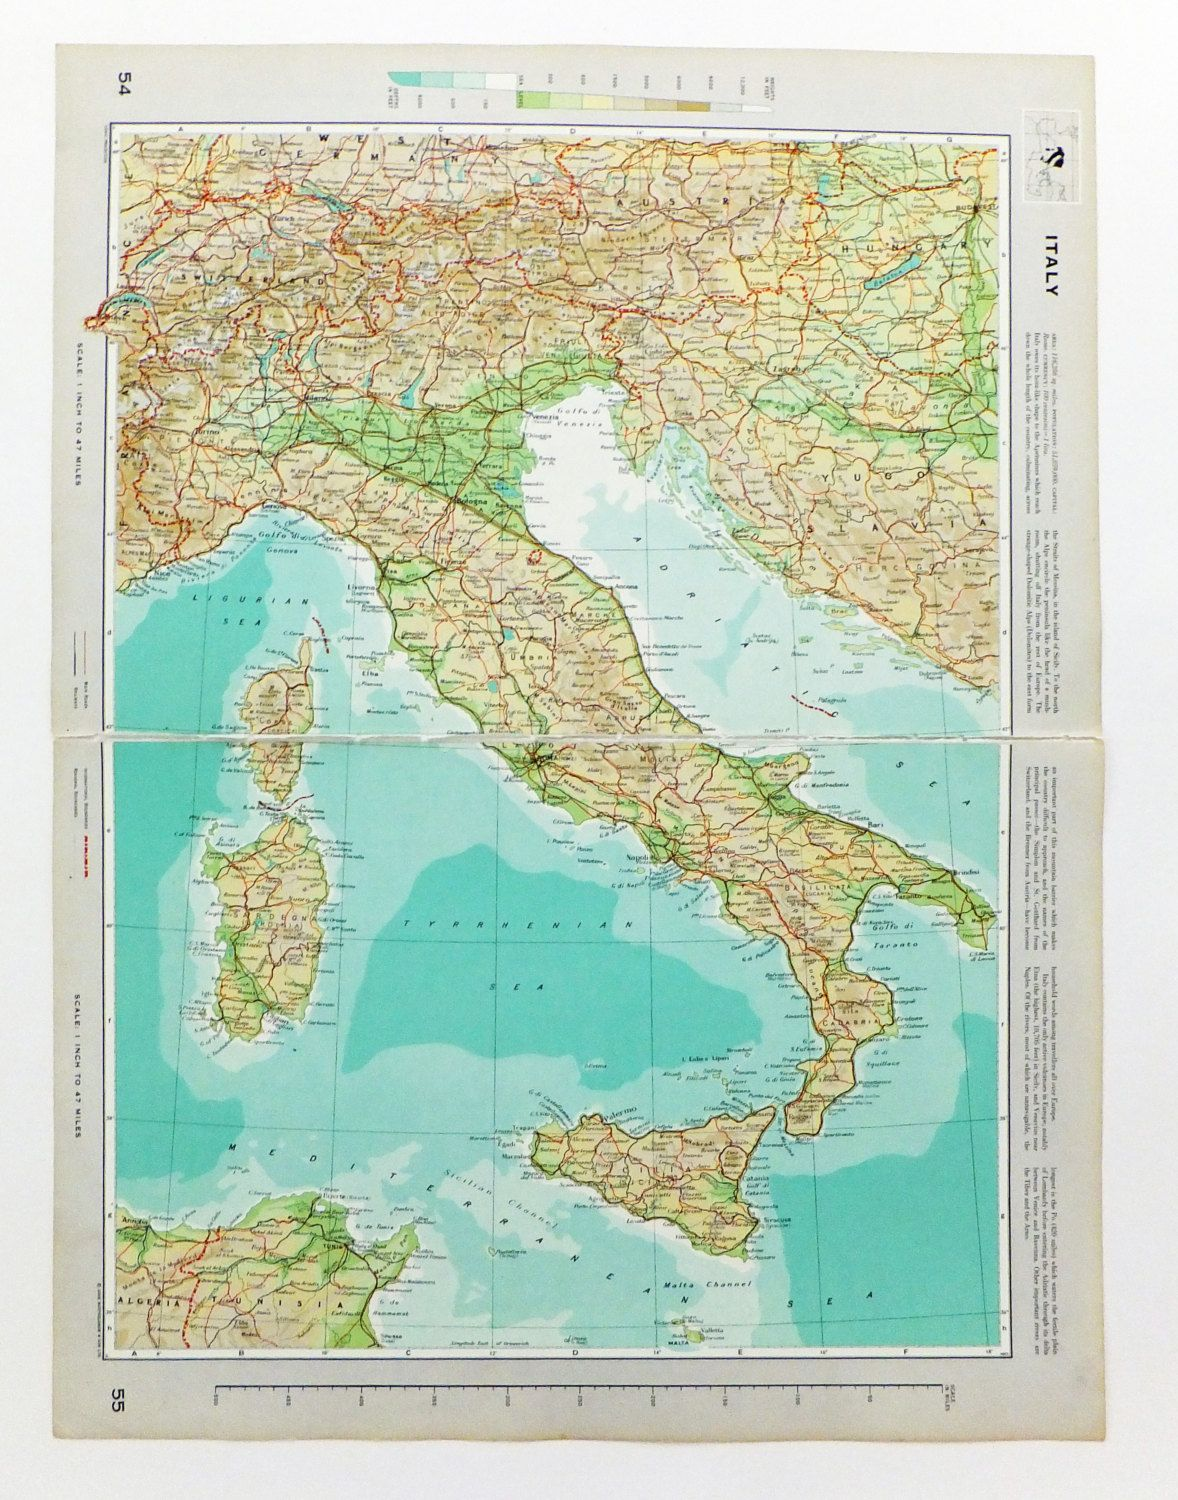 Large Map Of Italy.Pin By Ruth Sanders On Maps Italy Map Map Travel Souvenirs